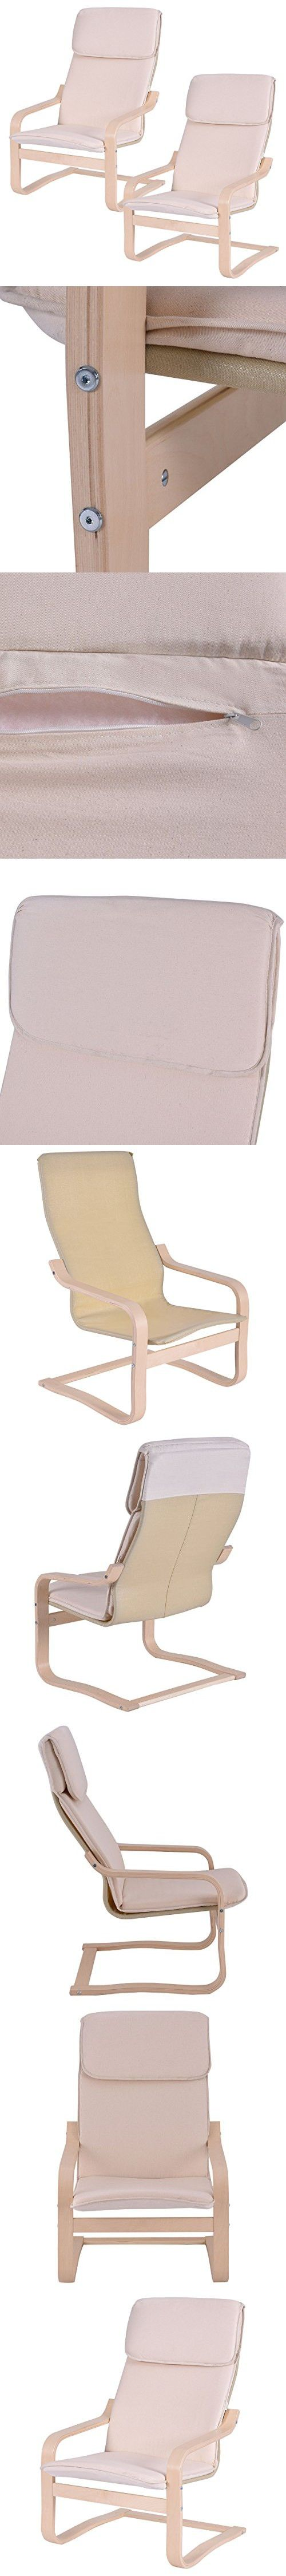 1126 best Chairs images on Pinterest